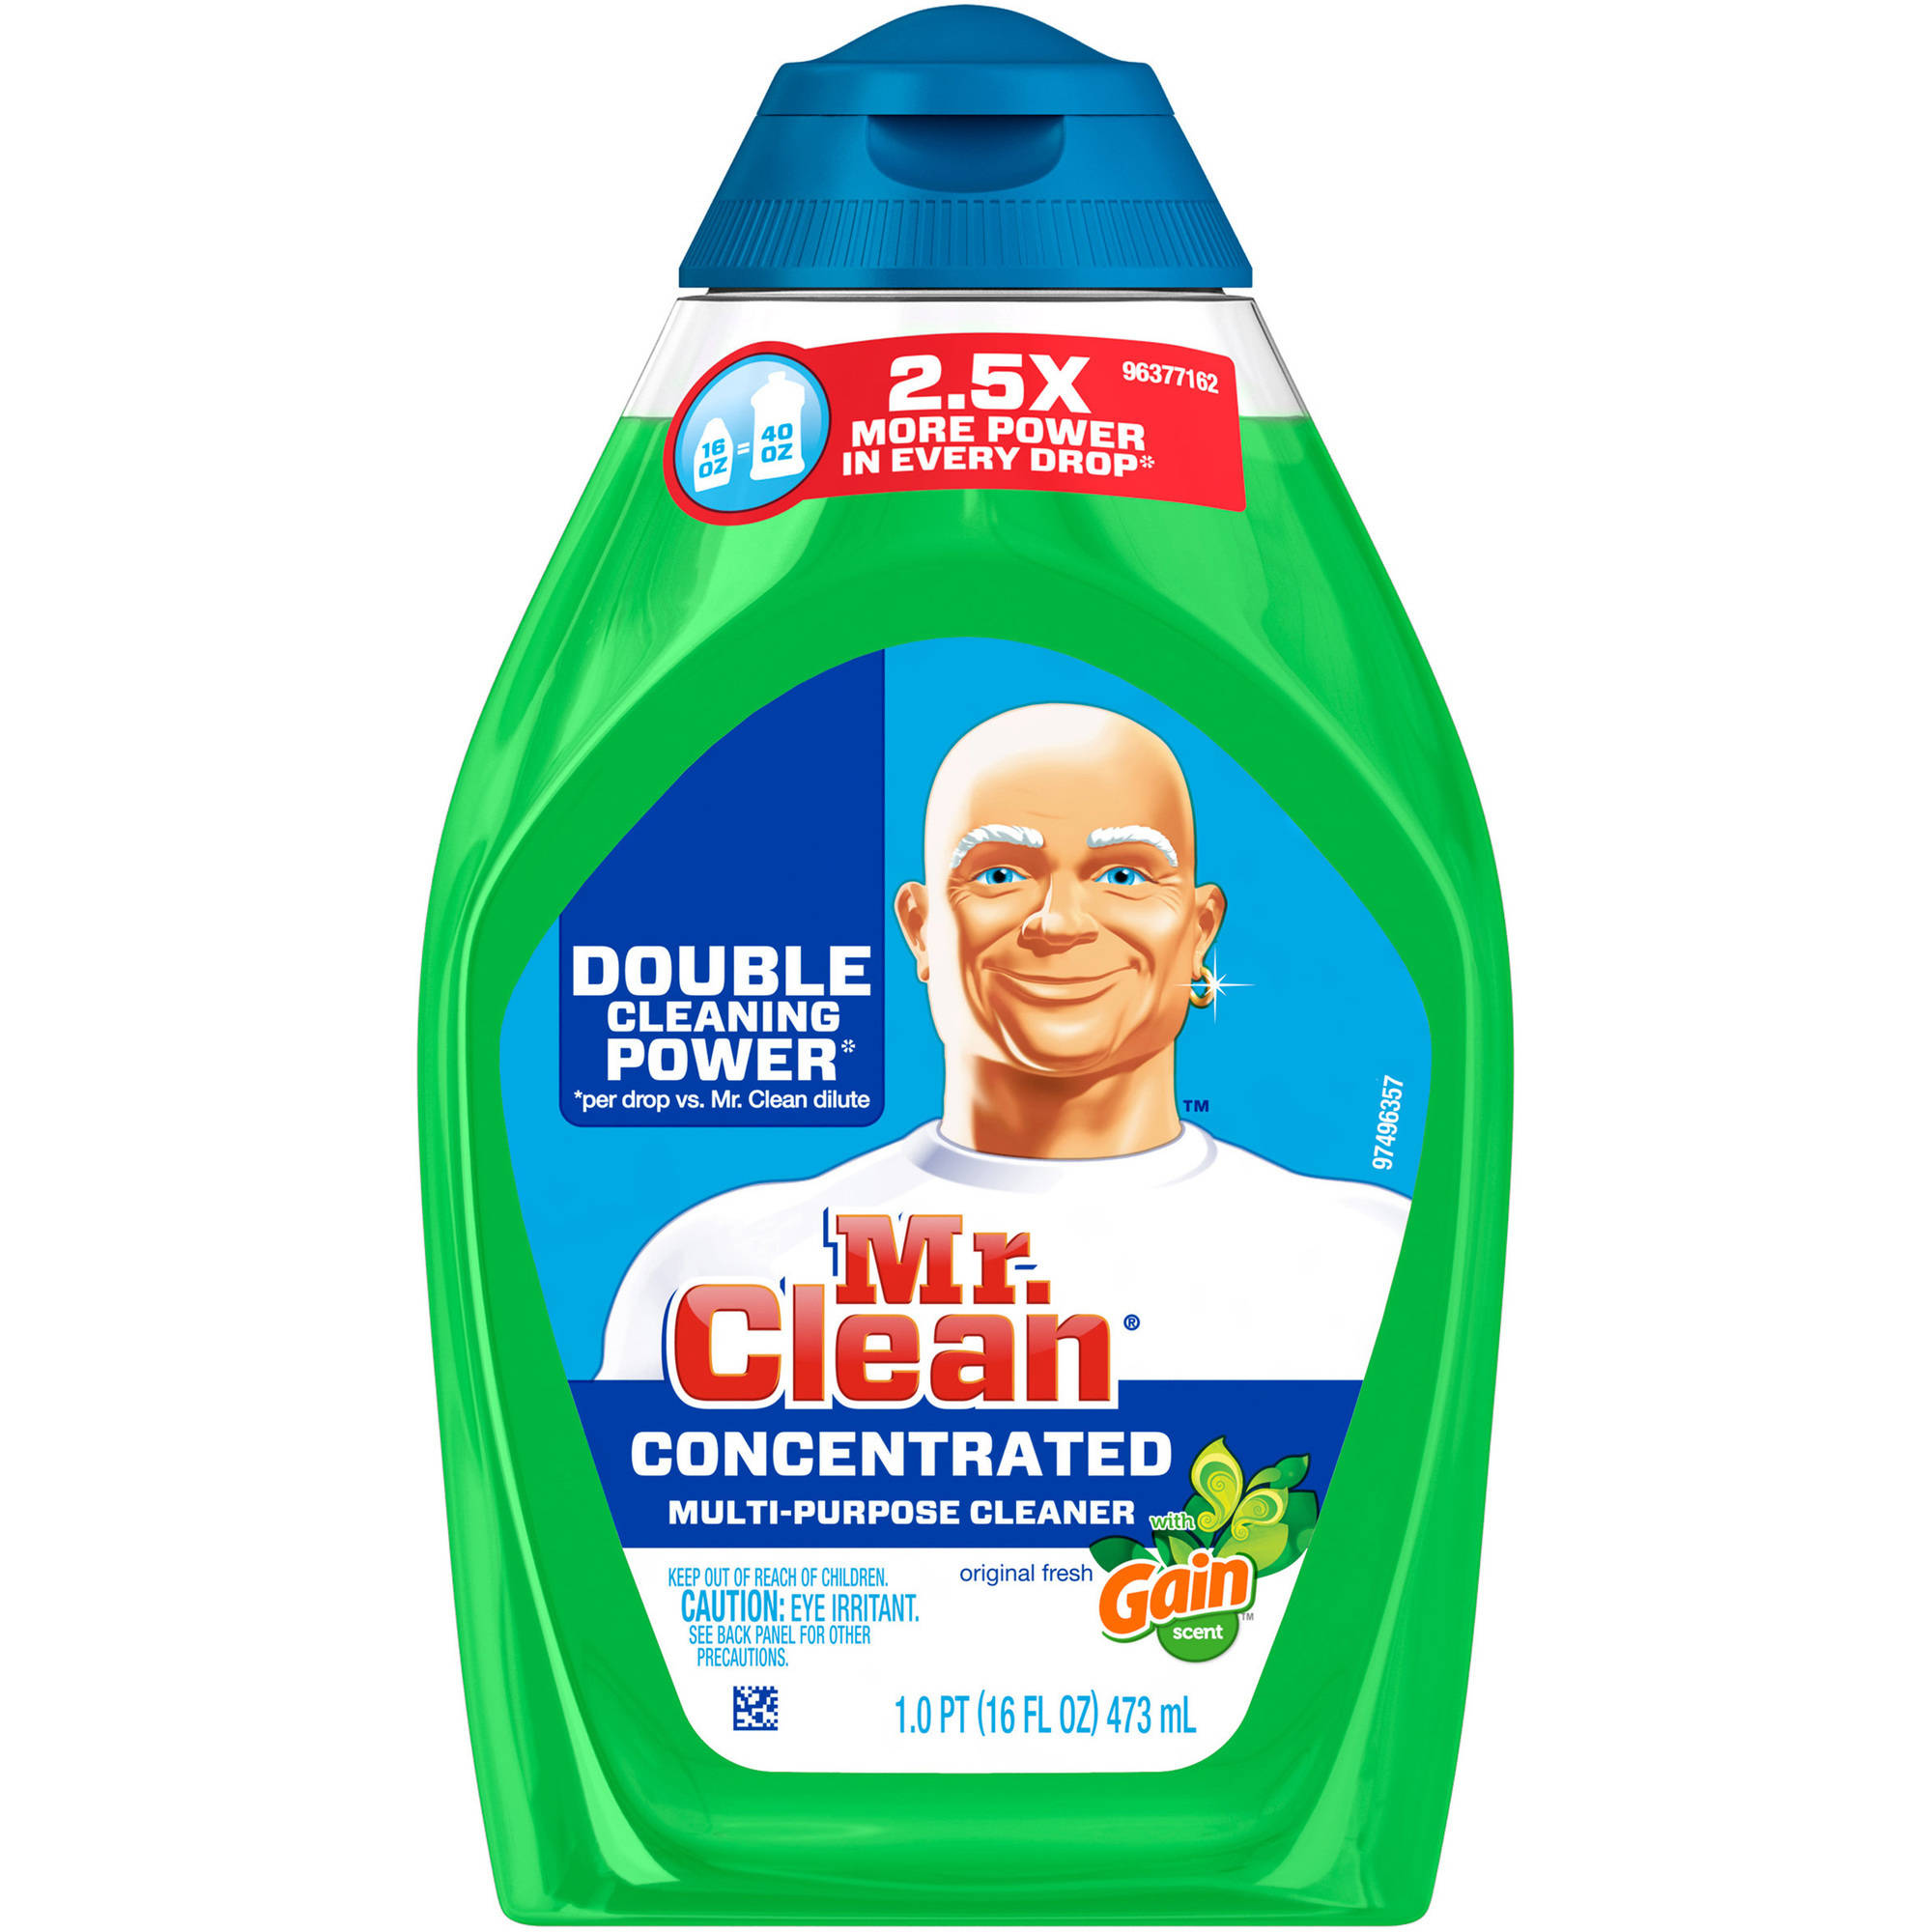 Mr. Clean Gain Original Fresh Scent Concentrated Multi-Purpose Cleaner, 16 oz